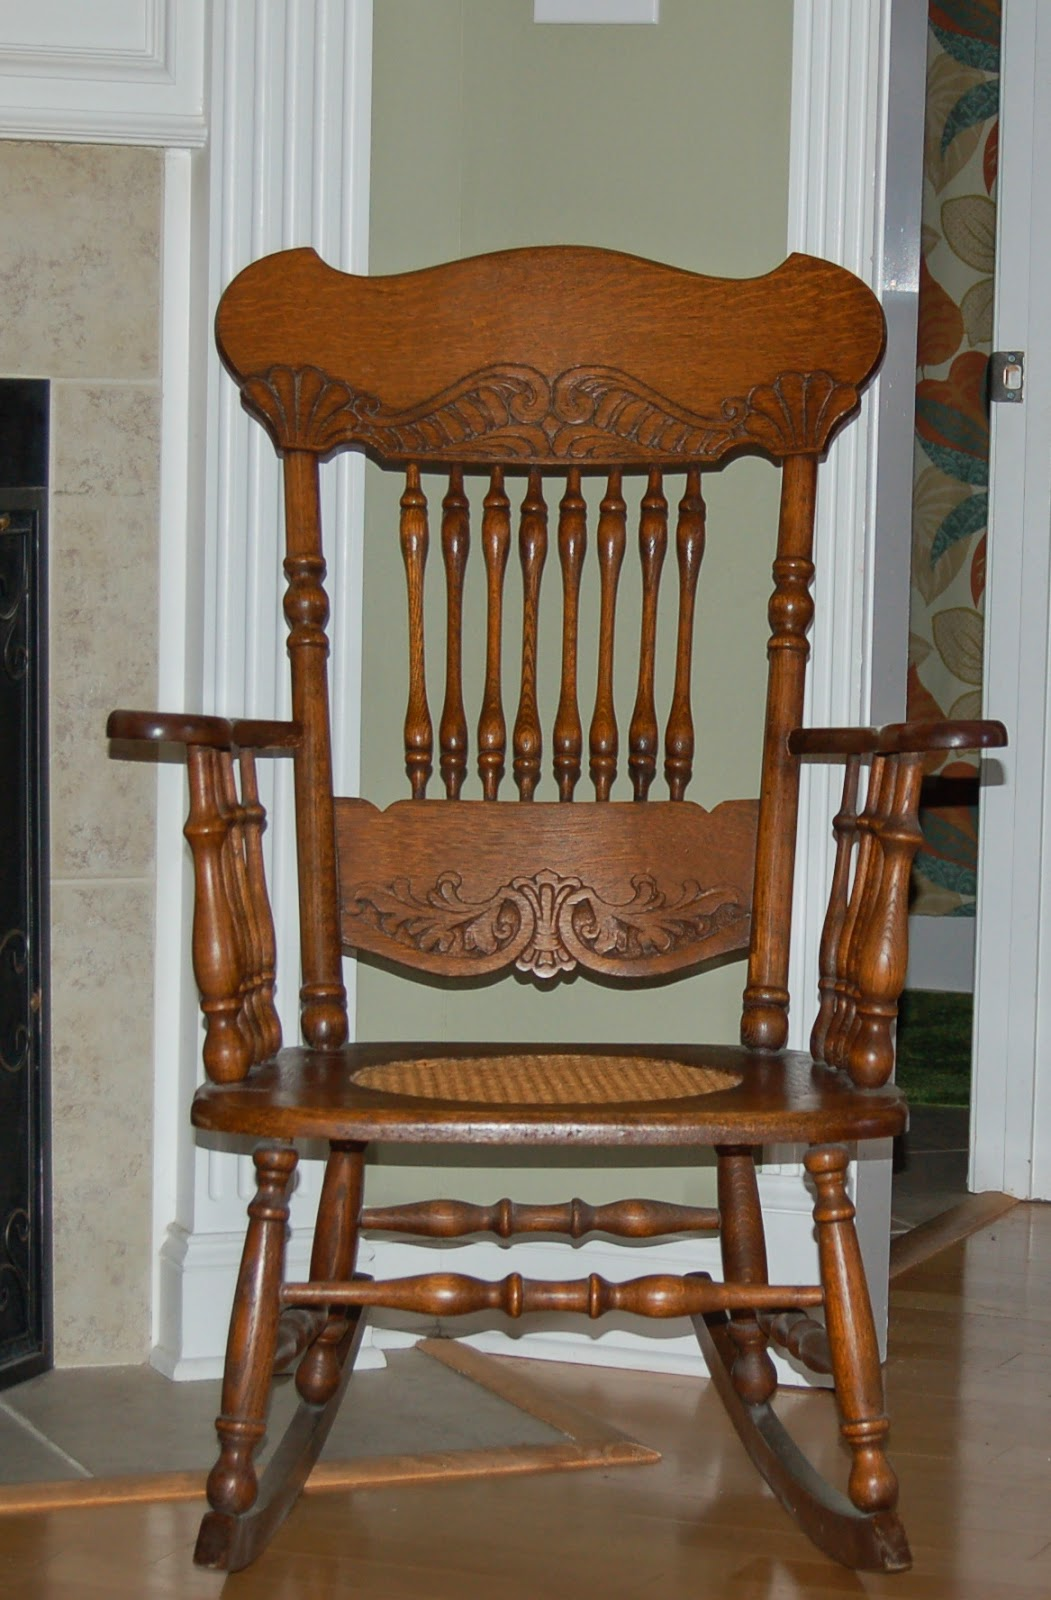 Antique Rocking Chair Identification Bed With Arms Uk Nanaland May 2014